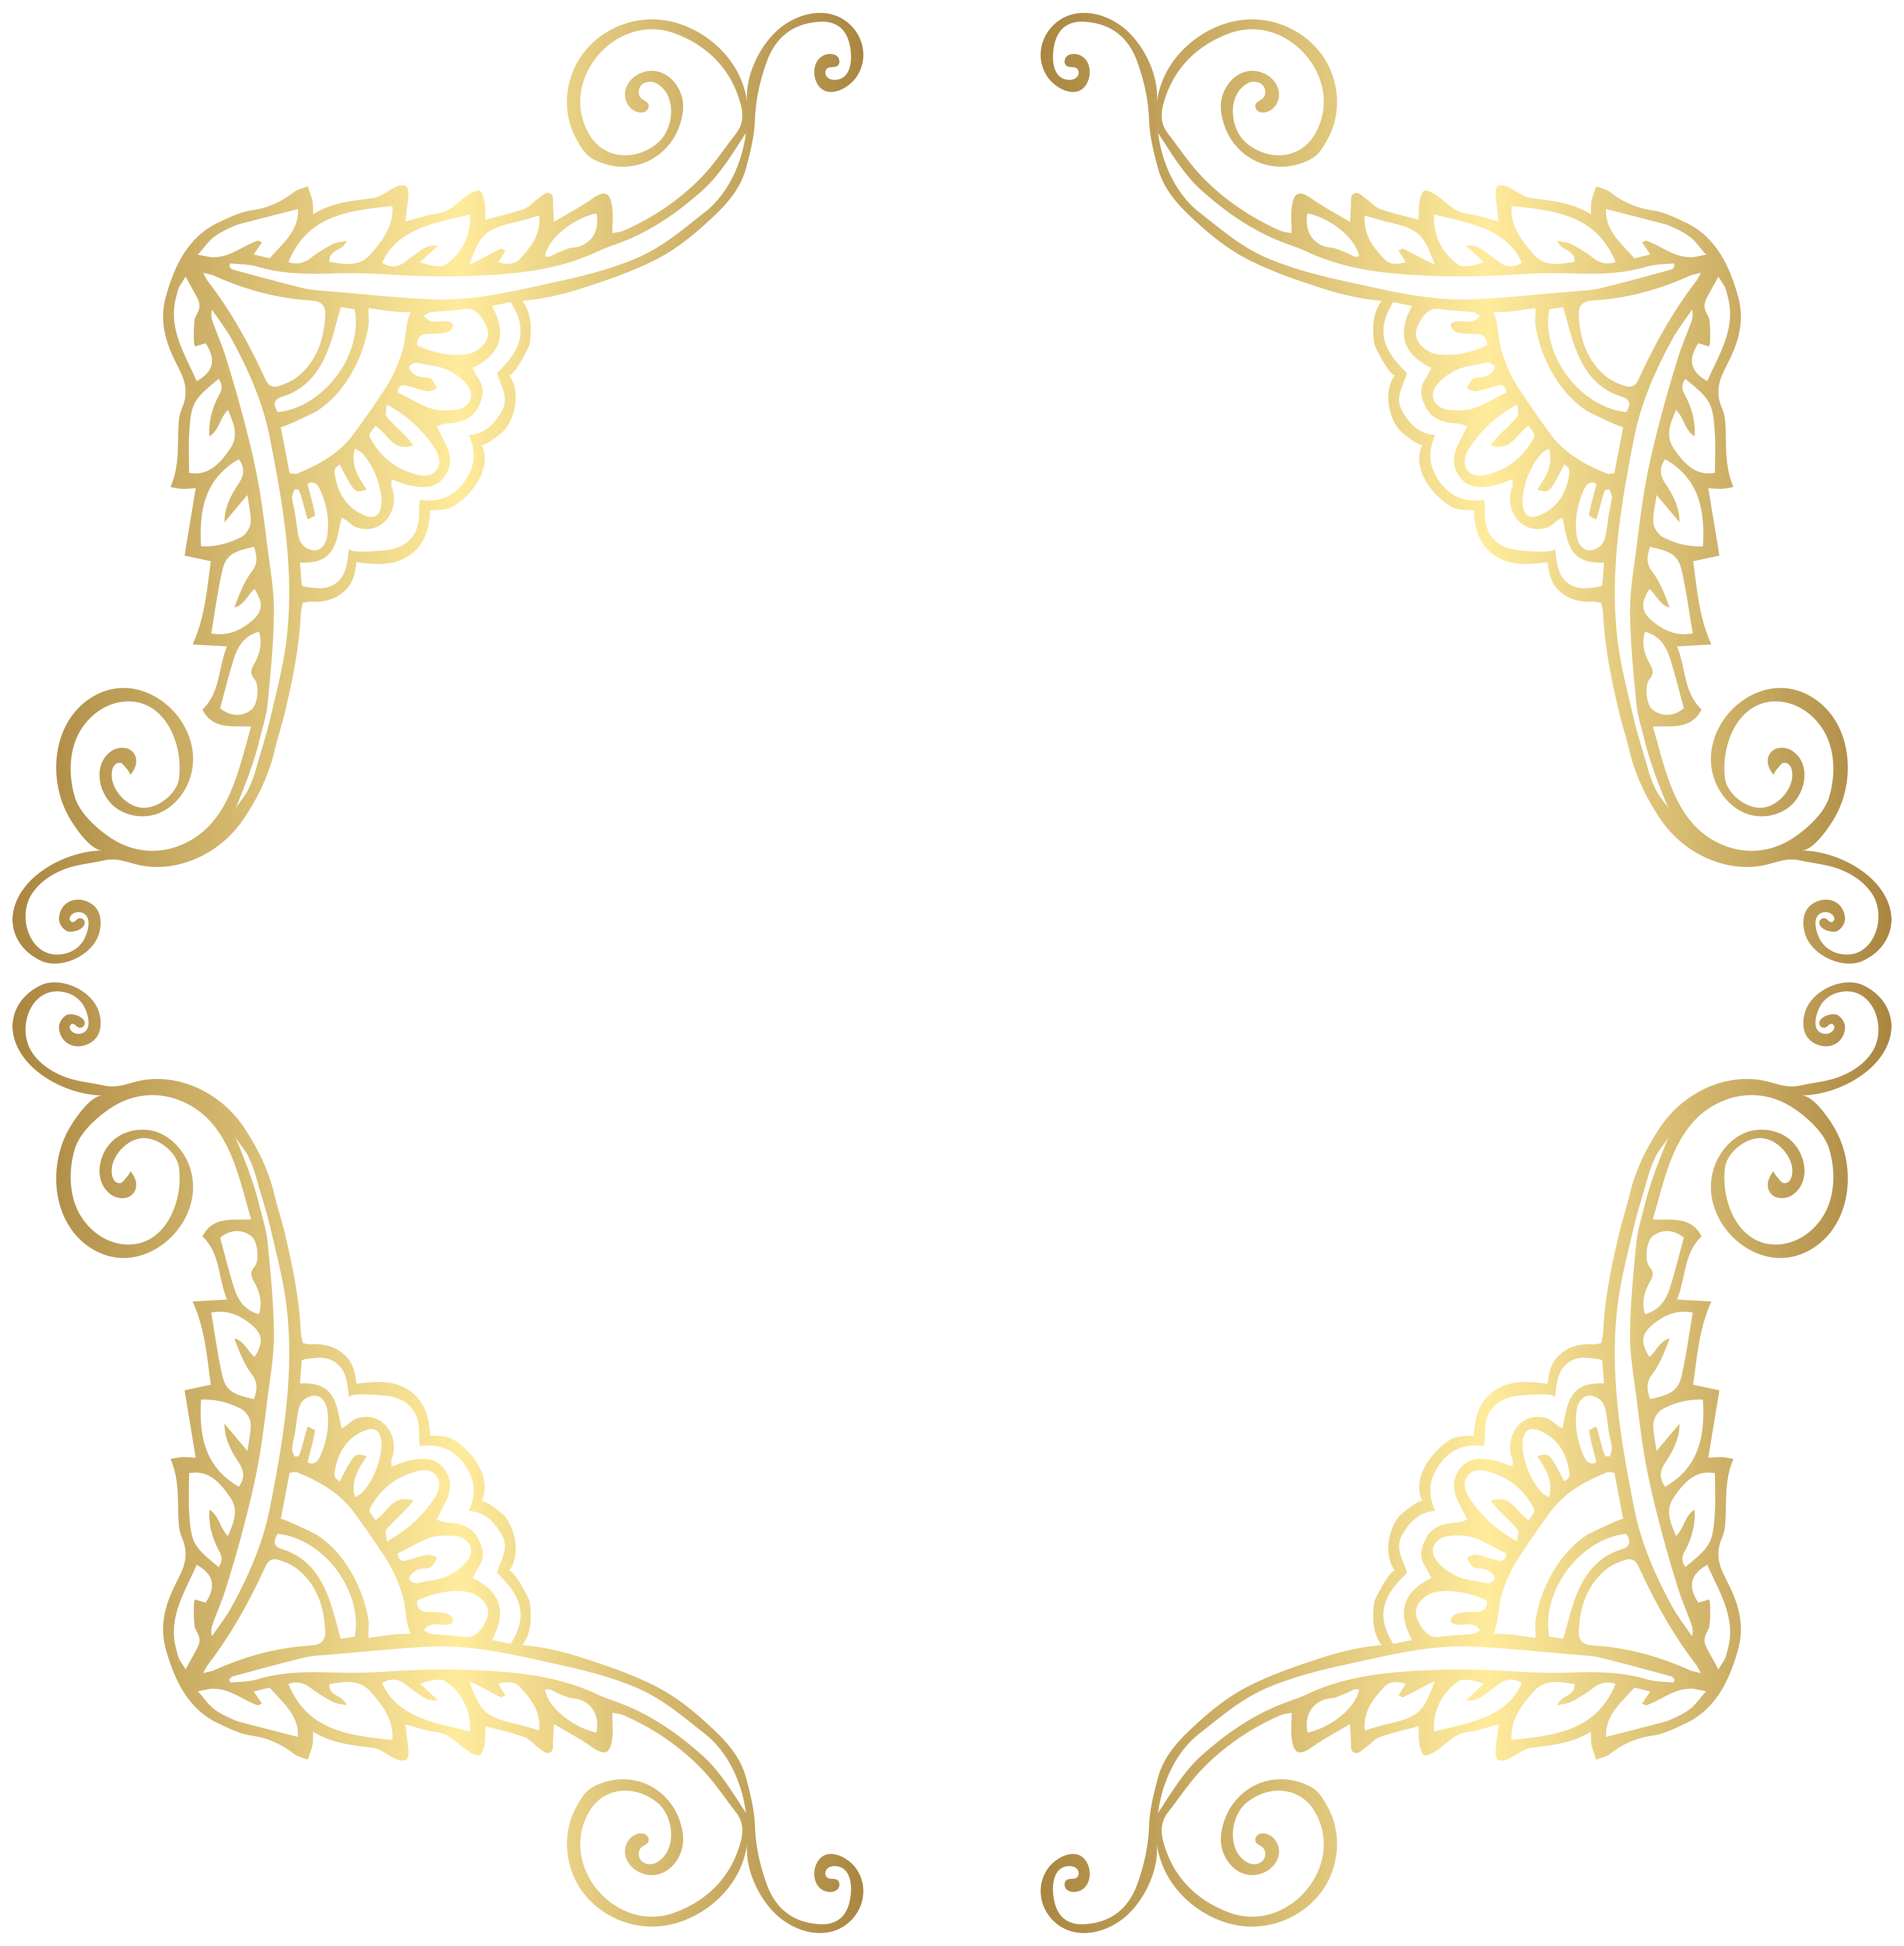 Gold borders clipart graphic freeuse download Free Golden Border Cliparts, Download Free Clip Art, Free Clip Art ... graphic freeuse download